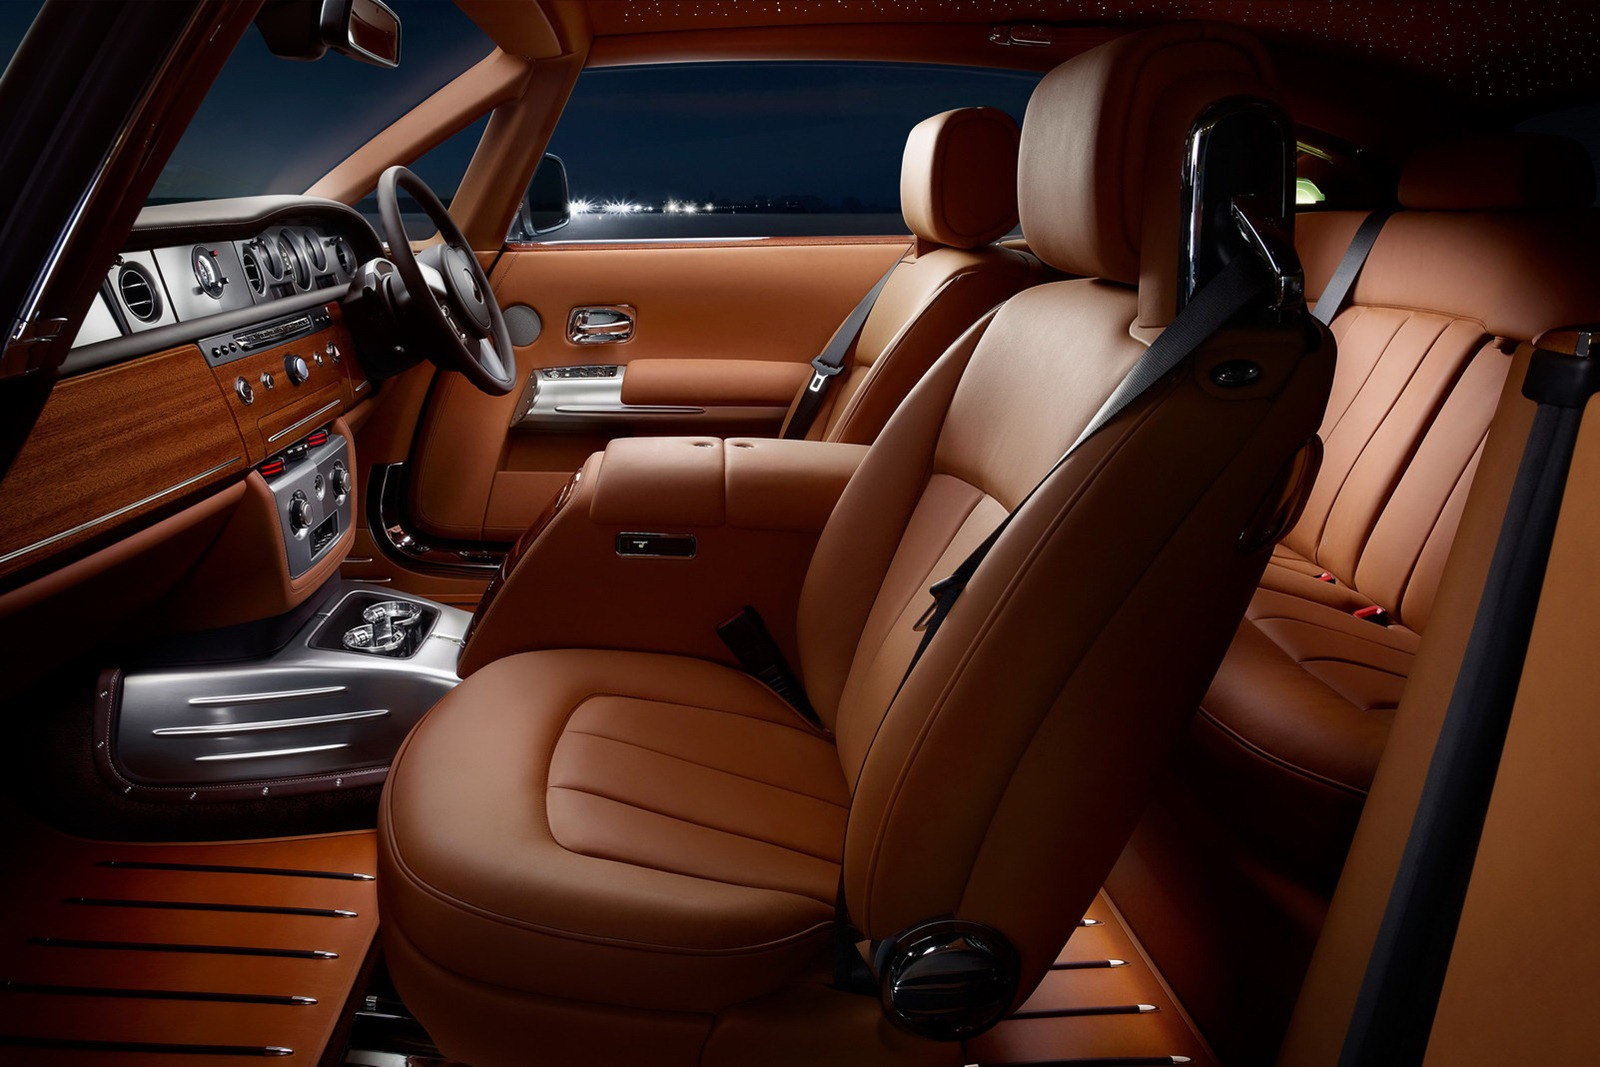 2013 Rolls Royce Phantom Coupe Aviator 4 2013 Rolls Royce Phantom Coupe Aviator is a mark of respect to their co founder